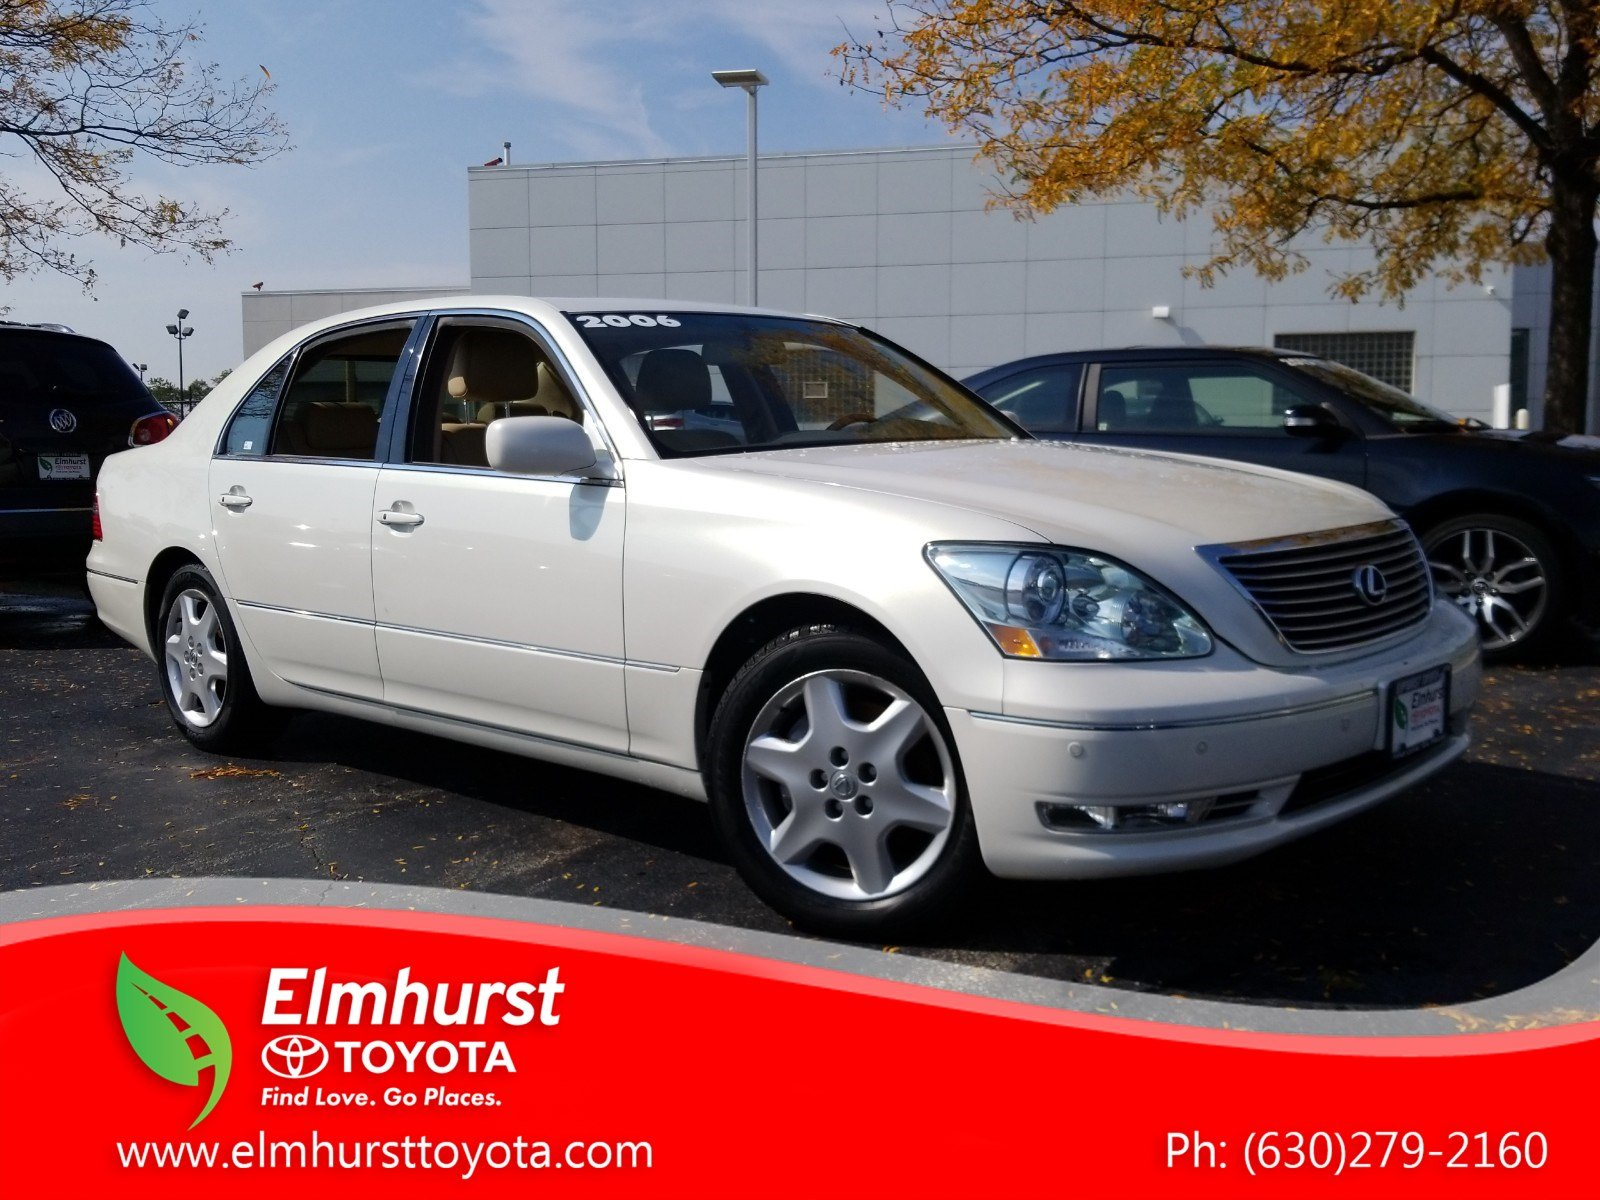 pre-owned 2006 lexus ls 430 4d sedan in elmhurst #t32838a | elmhurst